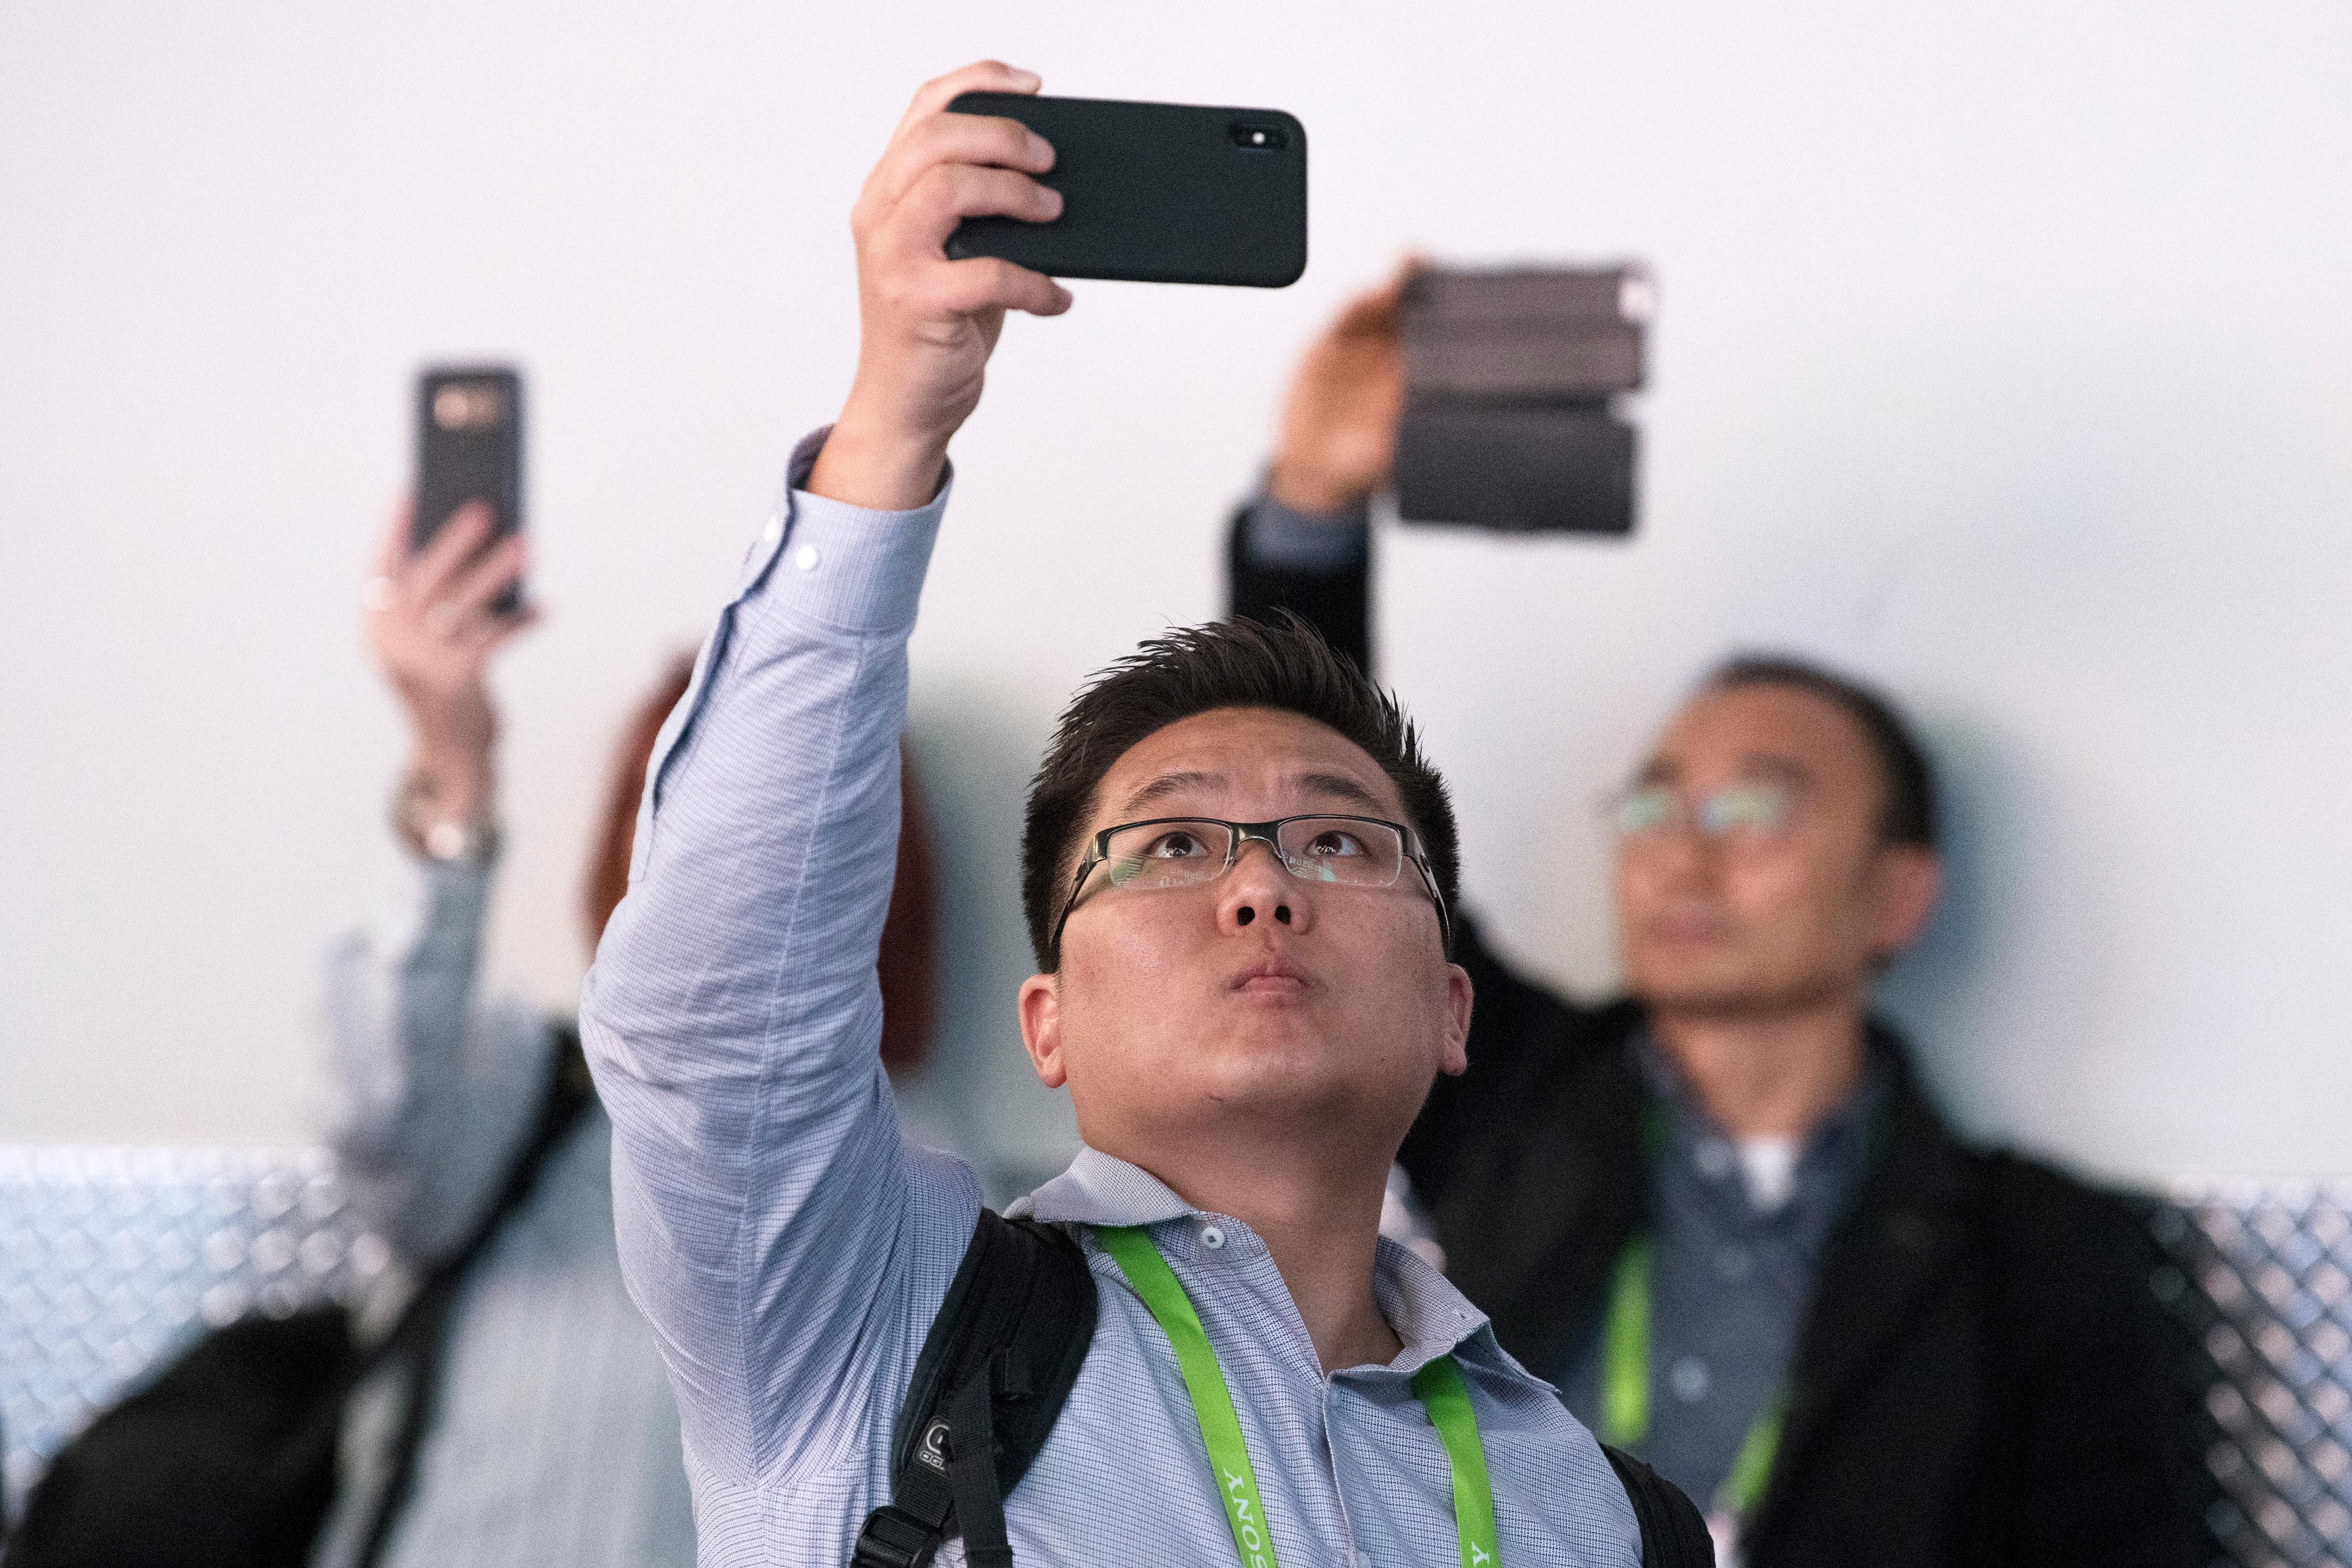 Attendees use their phones to record video during the second day of CES Wednesday, January 10, 2018, at the Las Vegas Convention Center. CREDIT: Sam Morris/Las Vegas News Bureau